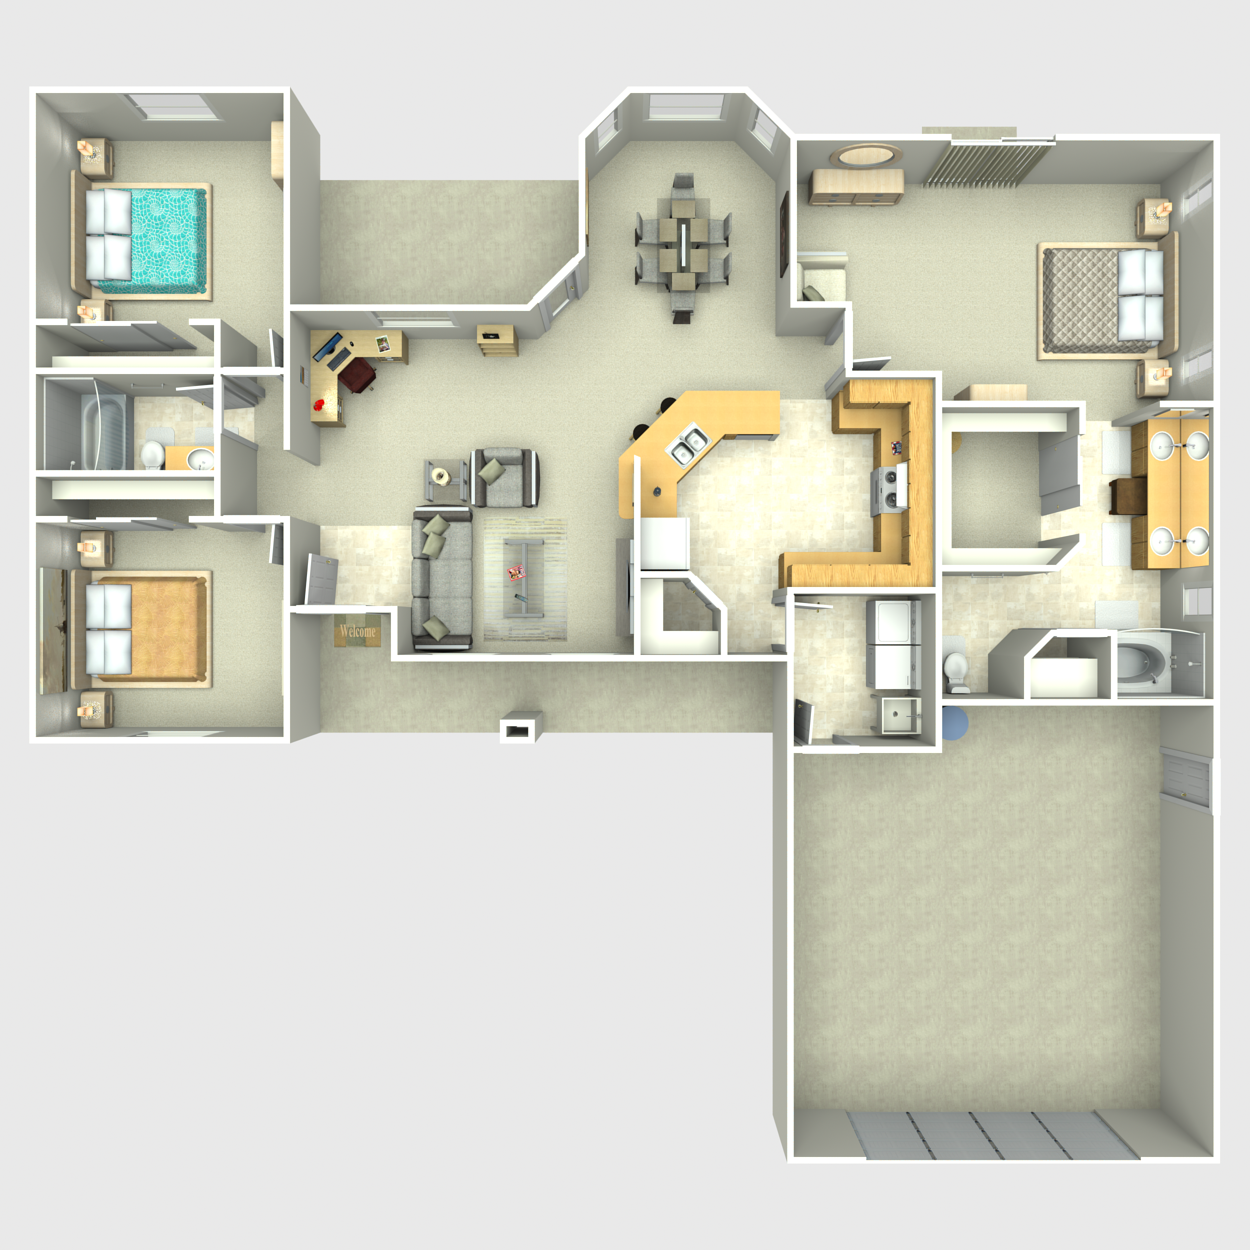 Floor plan image of Silver Sandpiper